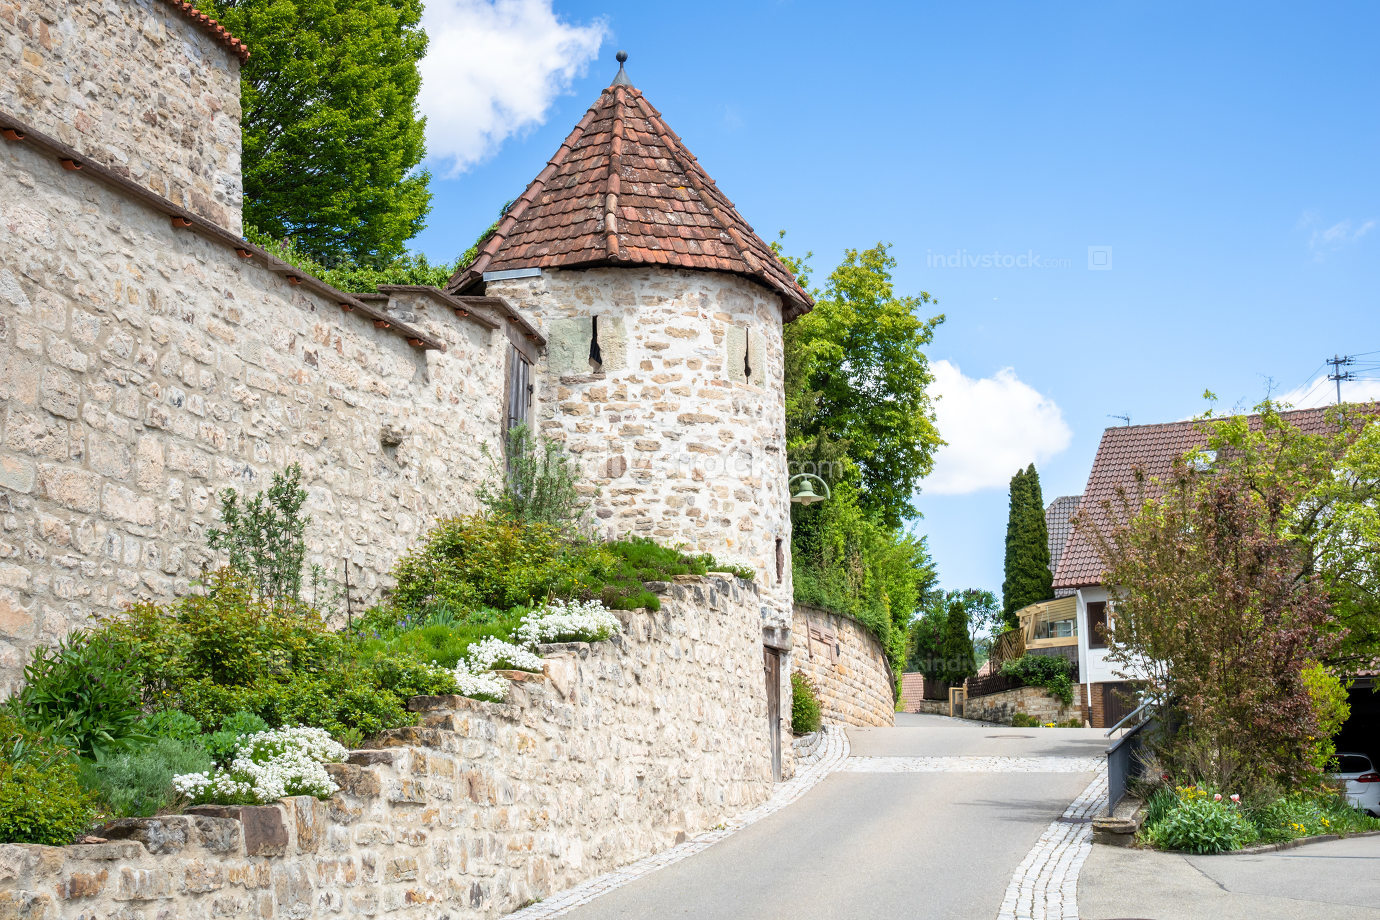 Fortified church at Bergfelden south Germany